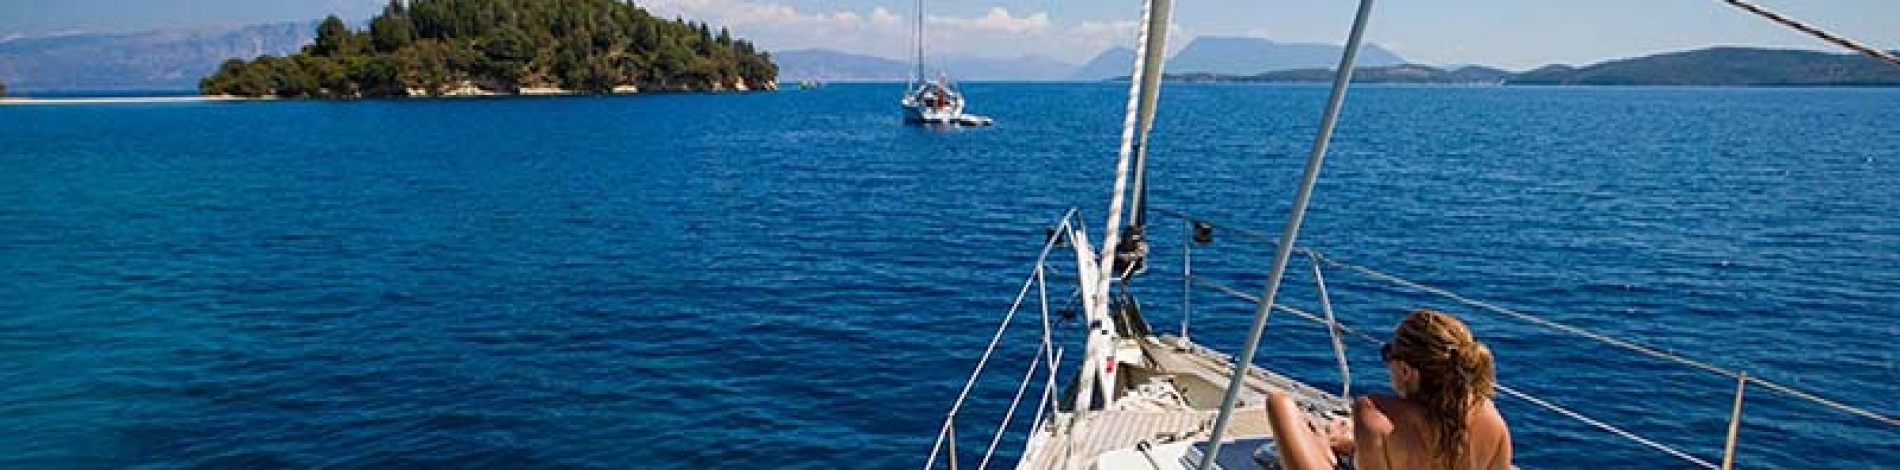 Prices and cost for crewed yacht charter in Greece